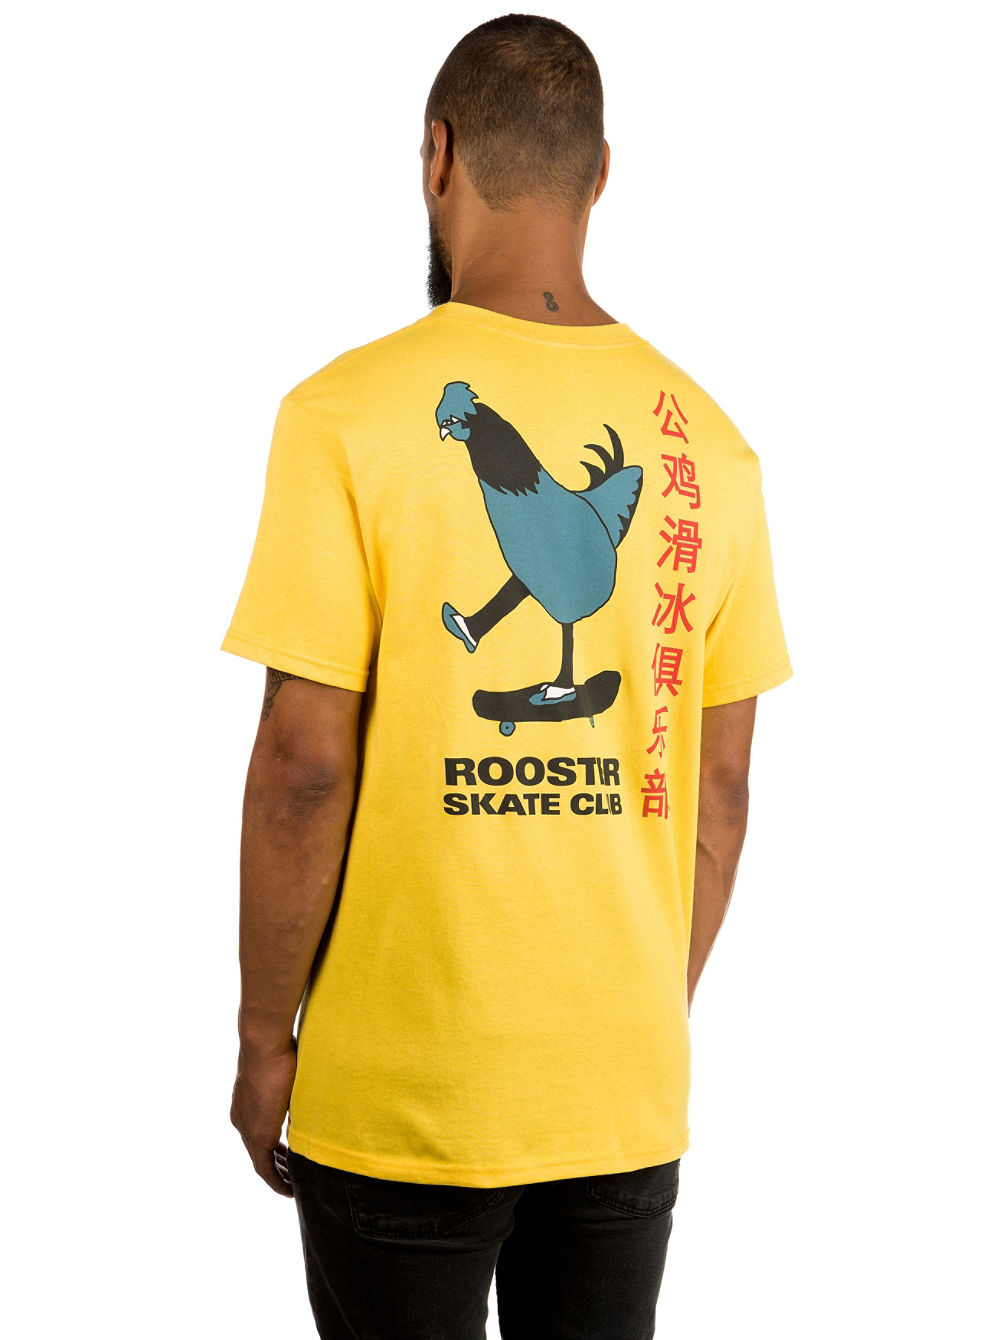 Rooster Sk8 Club T-Shirt